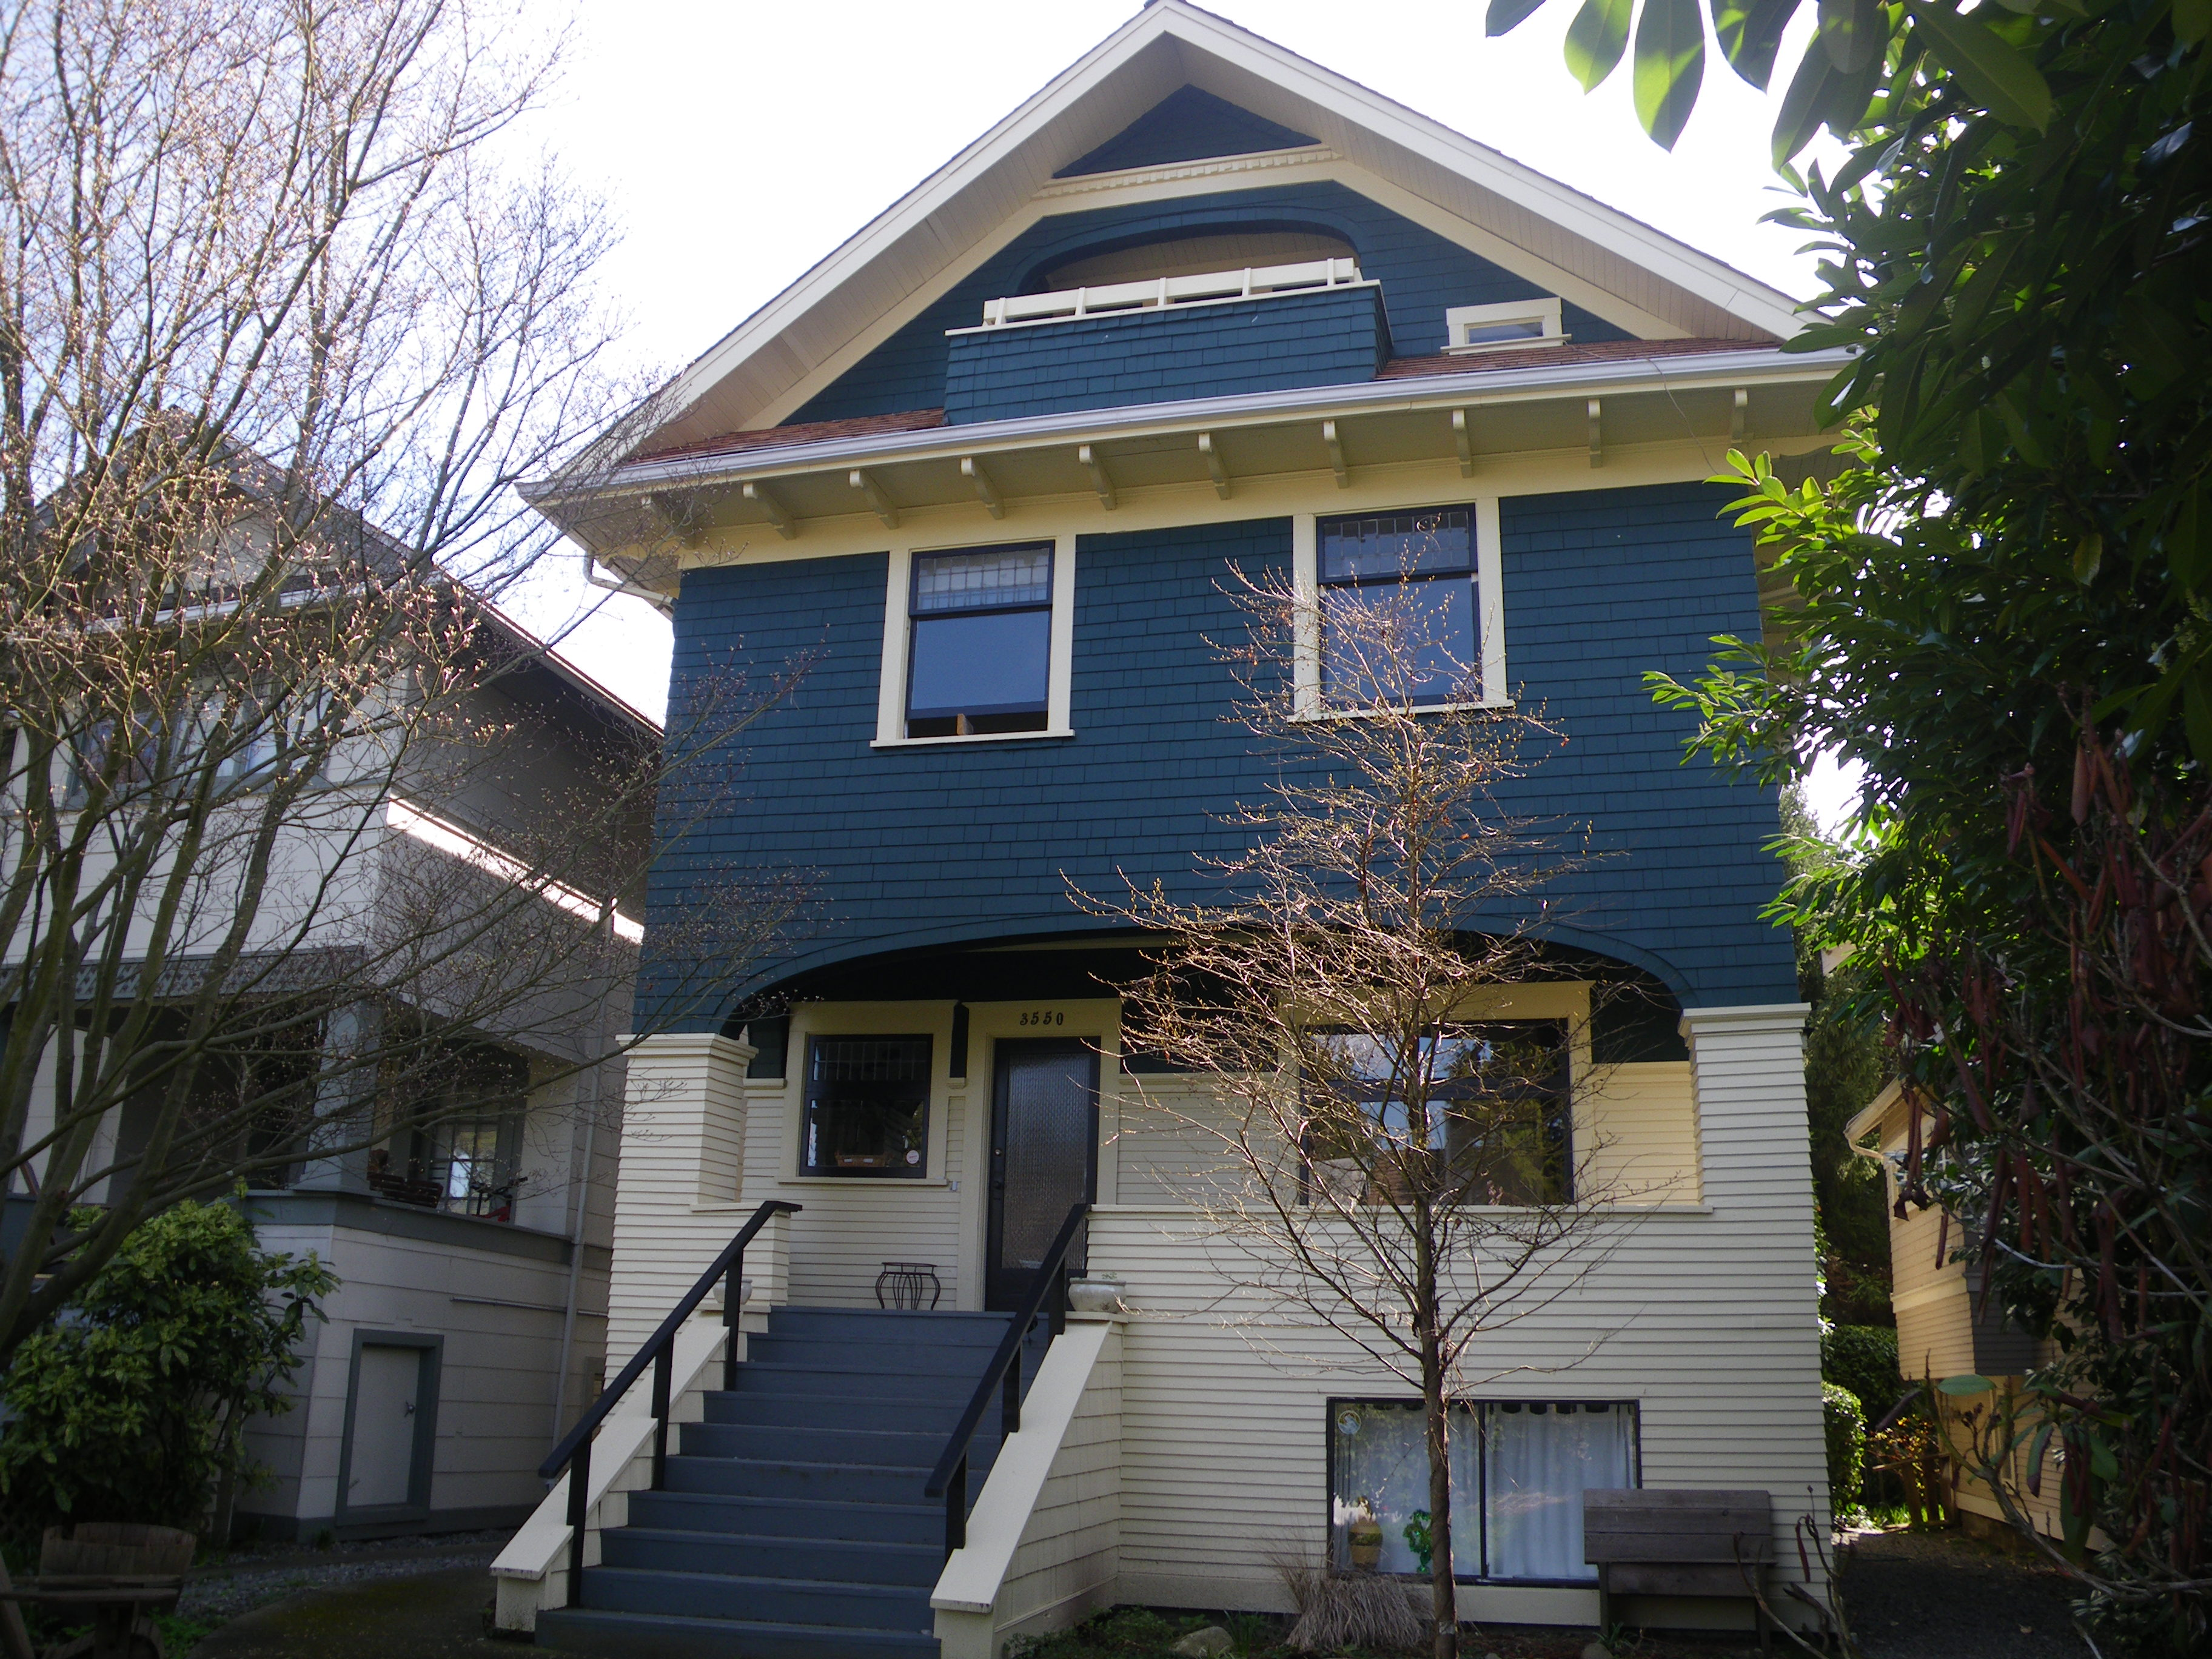 vancouver heritage house painting exterior house painting careful painting vancouver